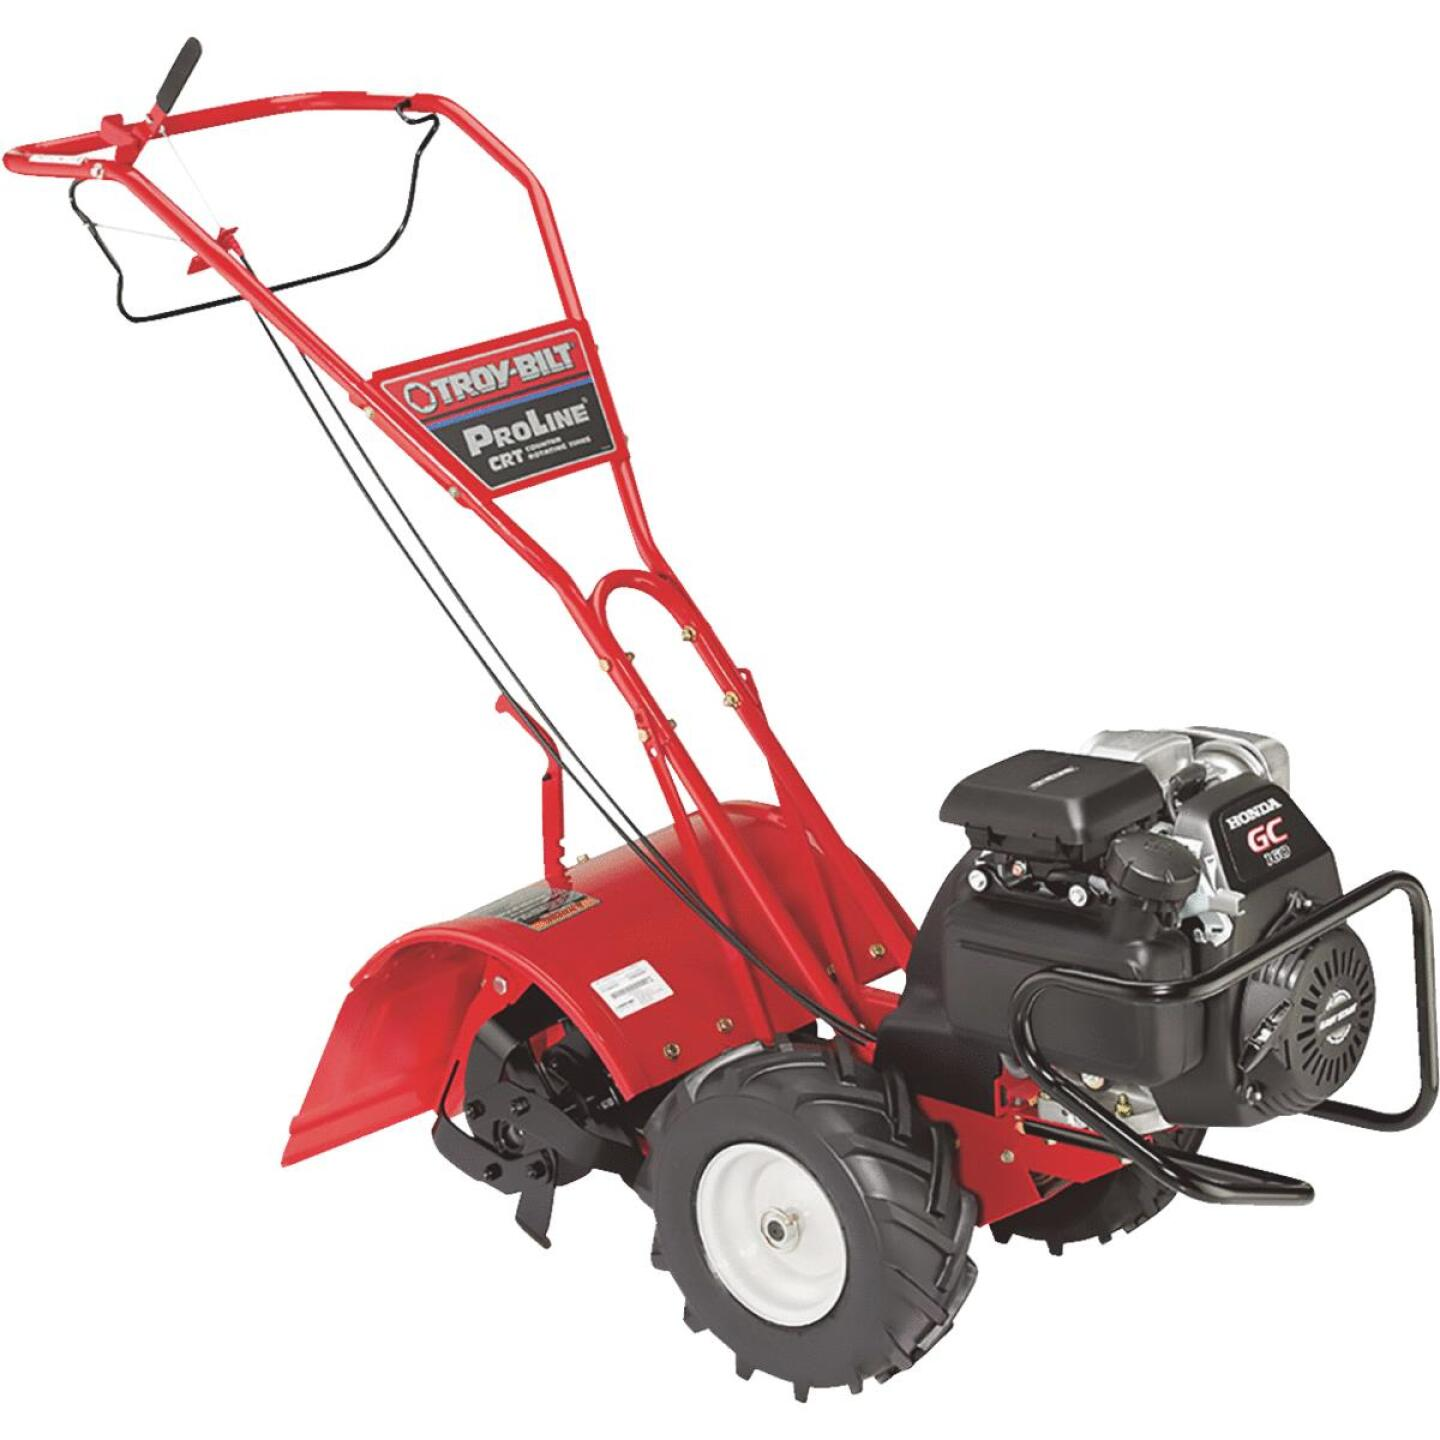 Troy-Bilt ProLine 16 In. 160cc Rear Tine Counter-Rotating Garden Tiller Image 1